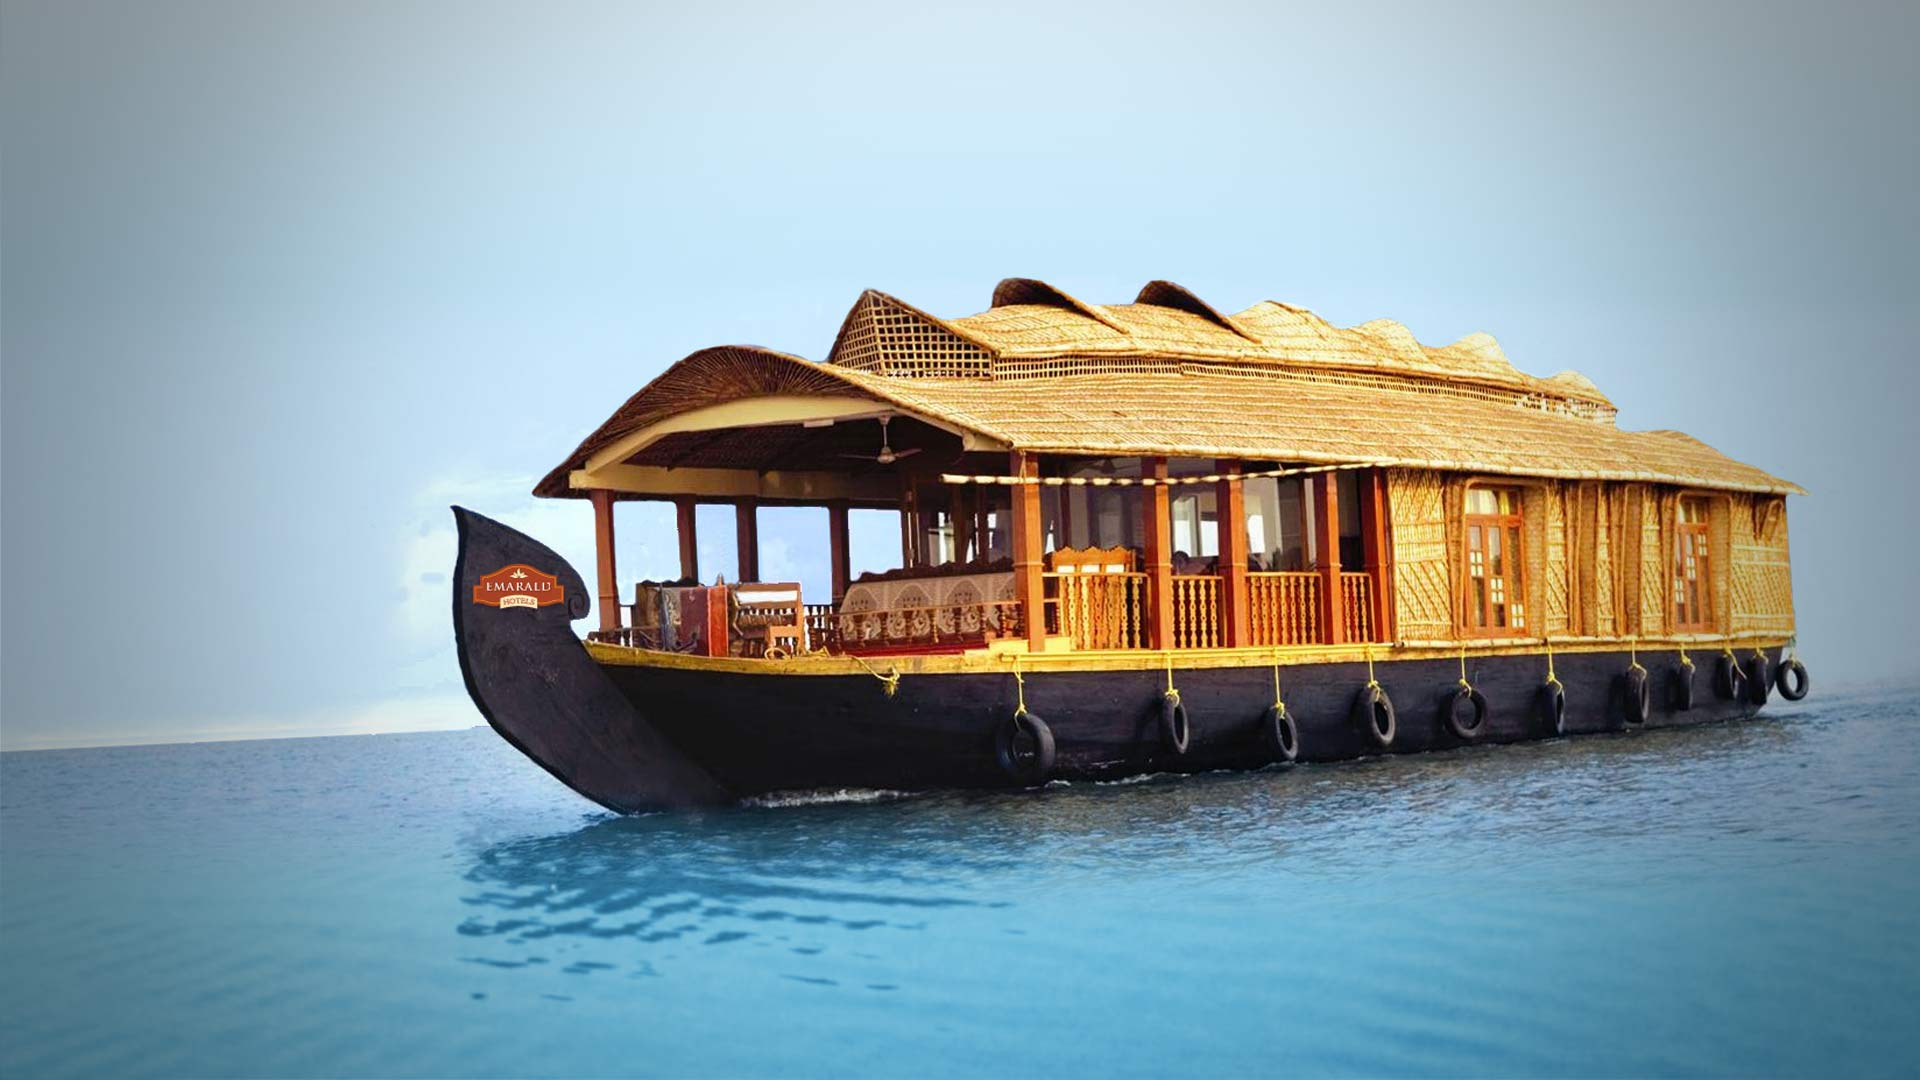 Kinsey Houseboats - Official Site Pictures of a houseboat